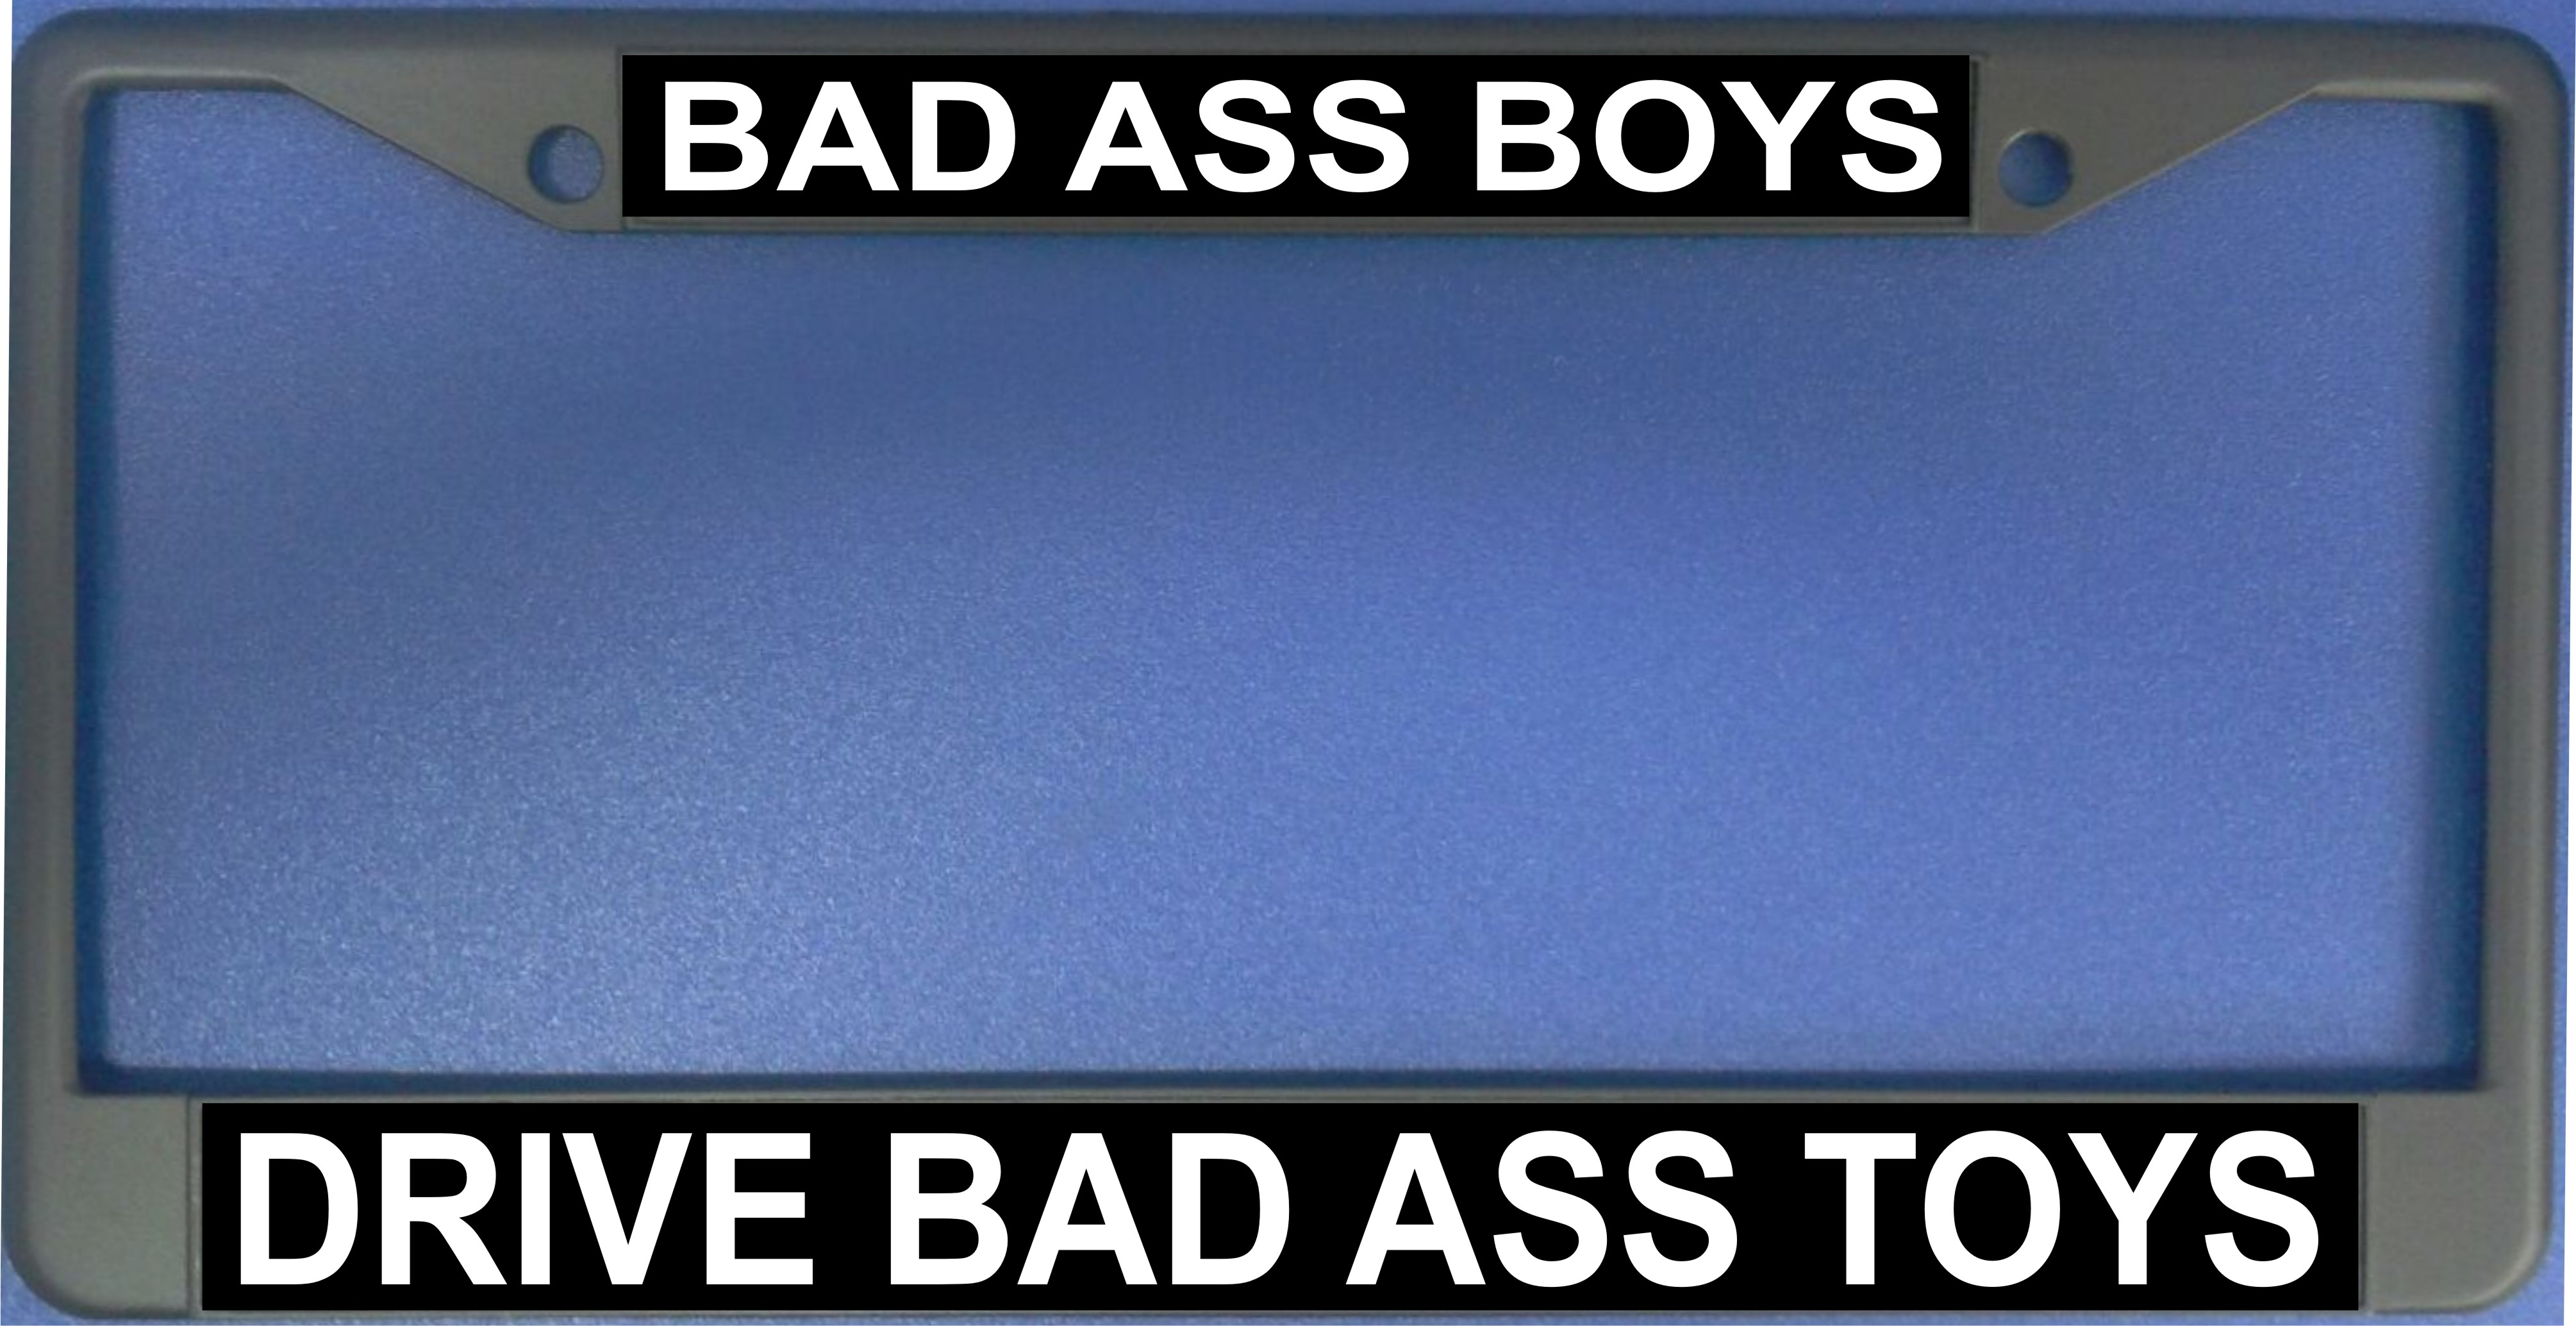 Bad Ass Boys Drive Bad Ass TOYS License Plate Frame   Free Screw Caps with this Frame